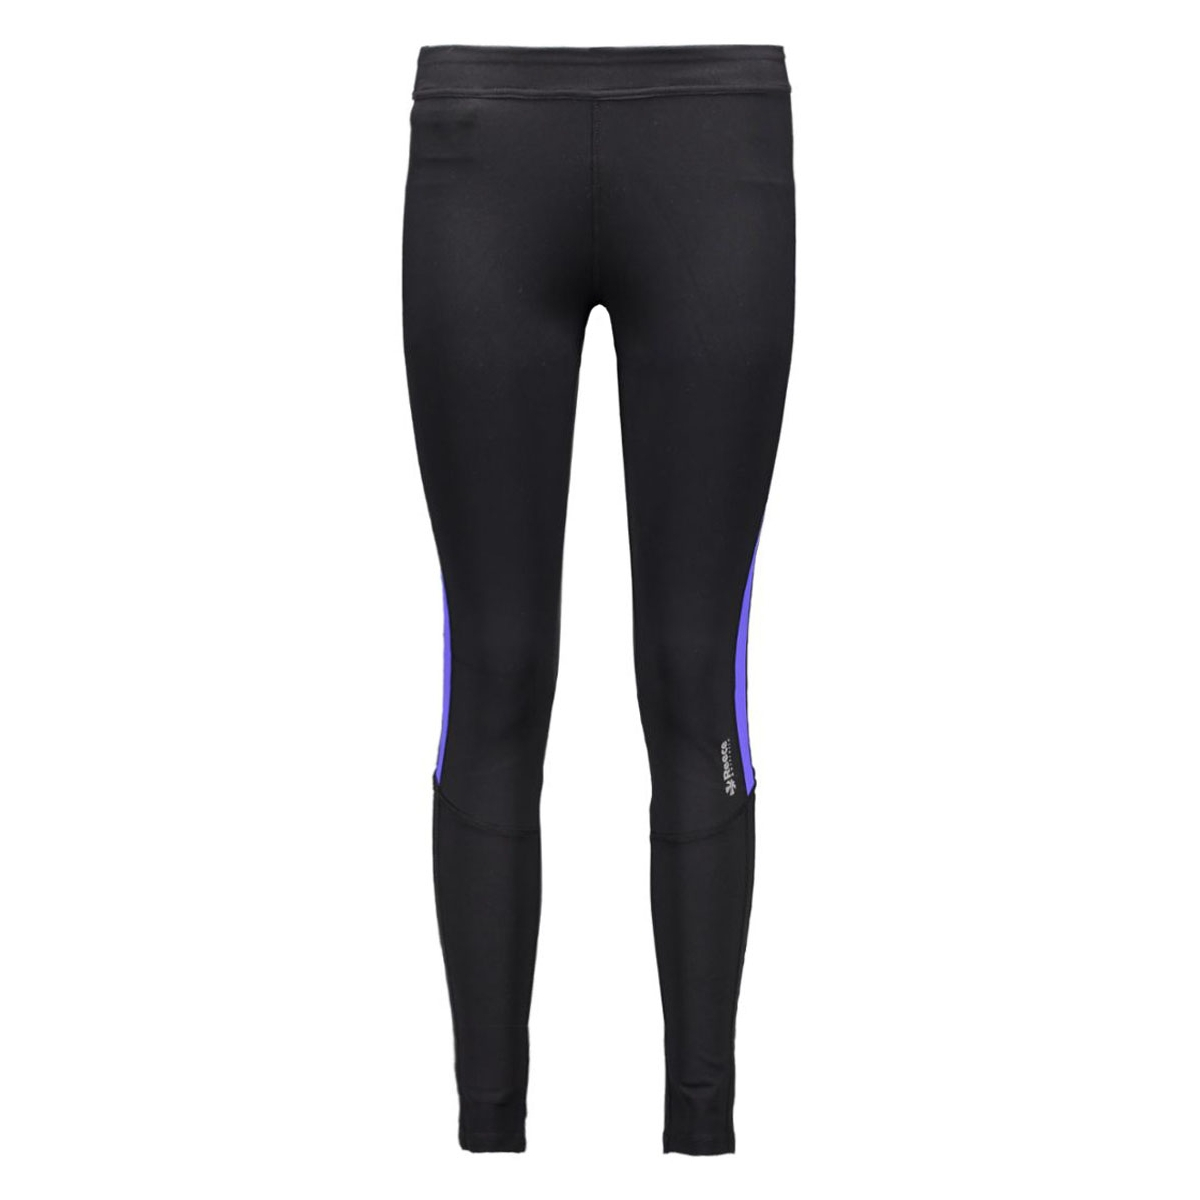 835603 florence reece sport broek 8170 black-purple